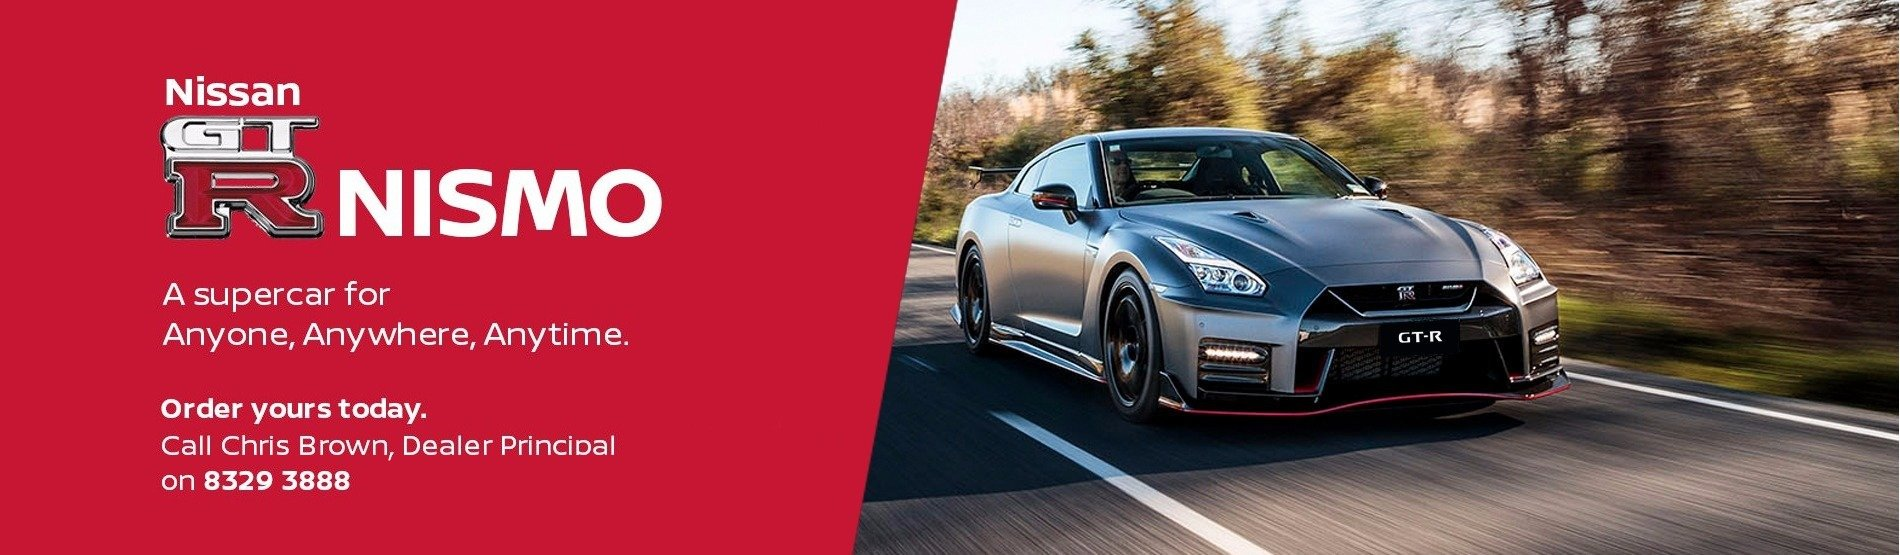 GT-R available here